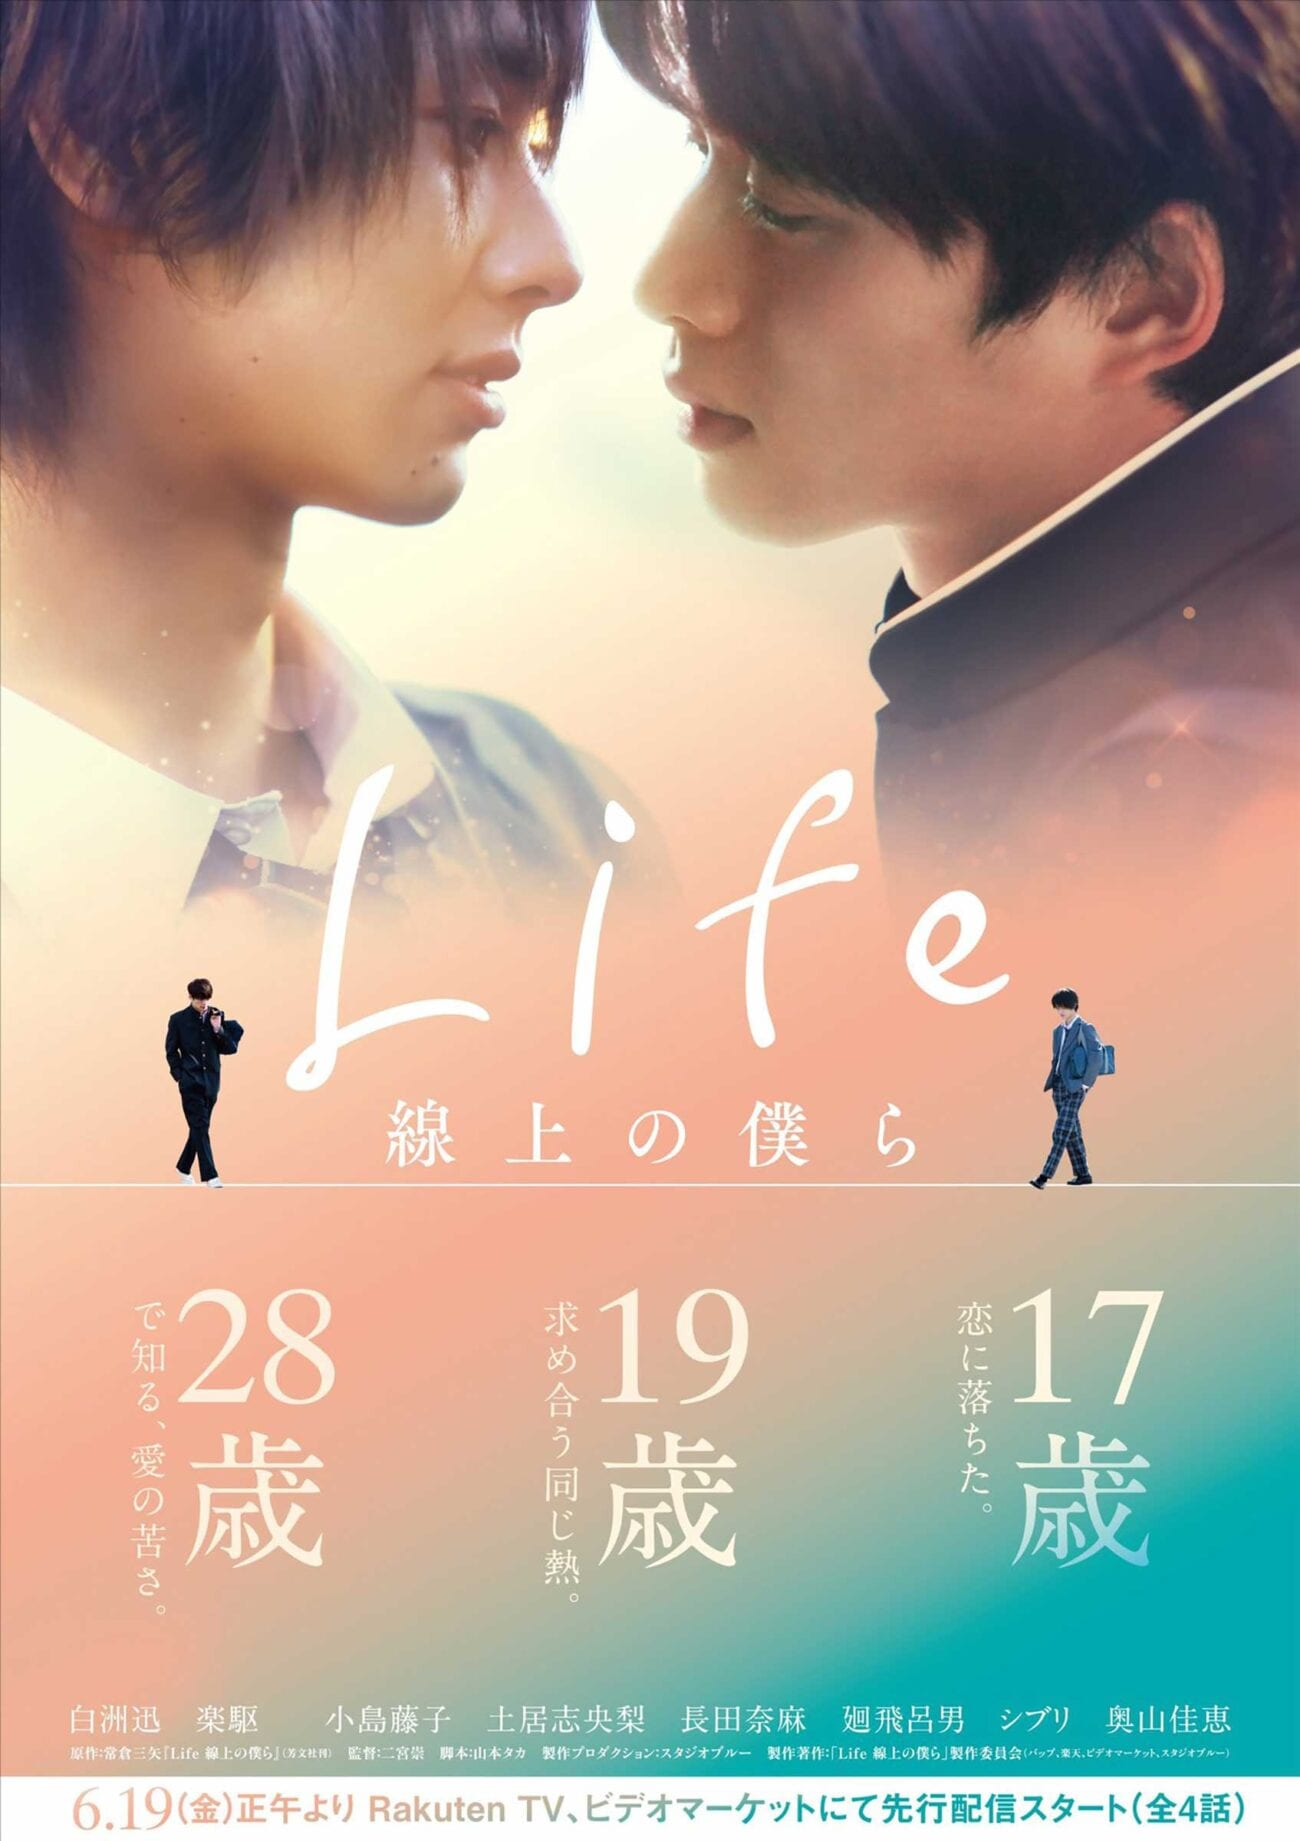 Japan is no stranger to successful Boy Love (BL) productions. Here is everything you need to know about 'Life-Love on the Line'.